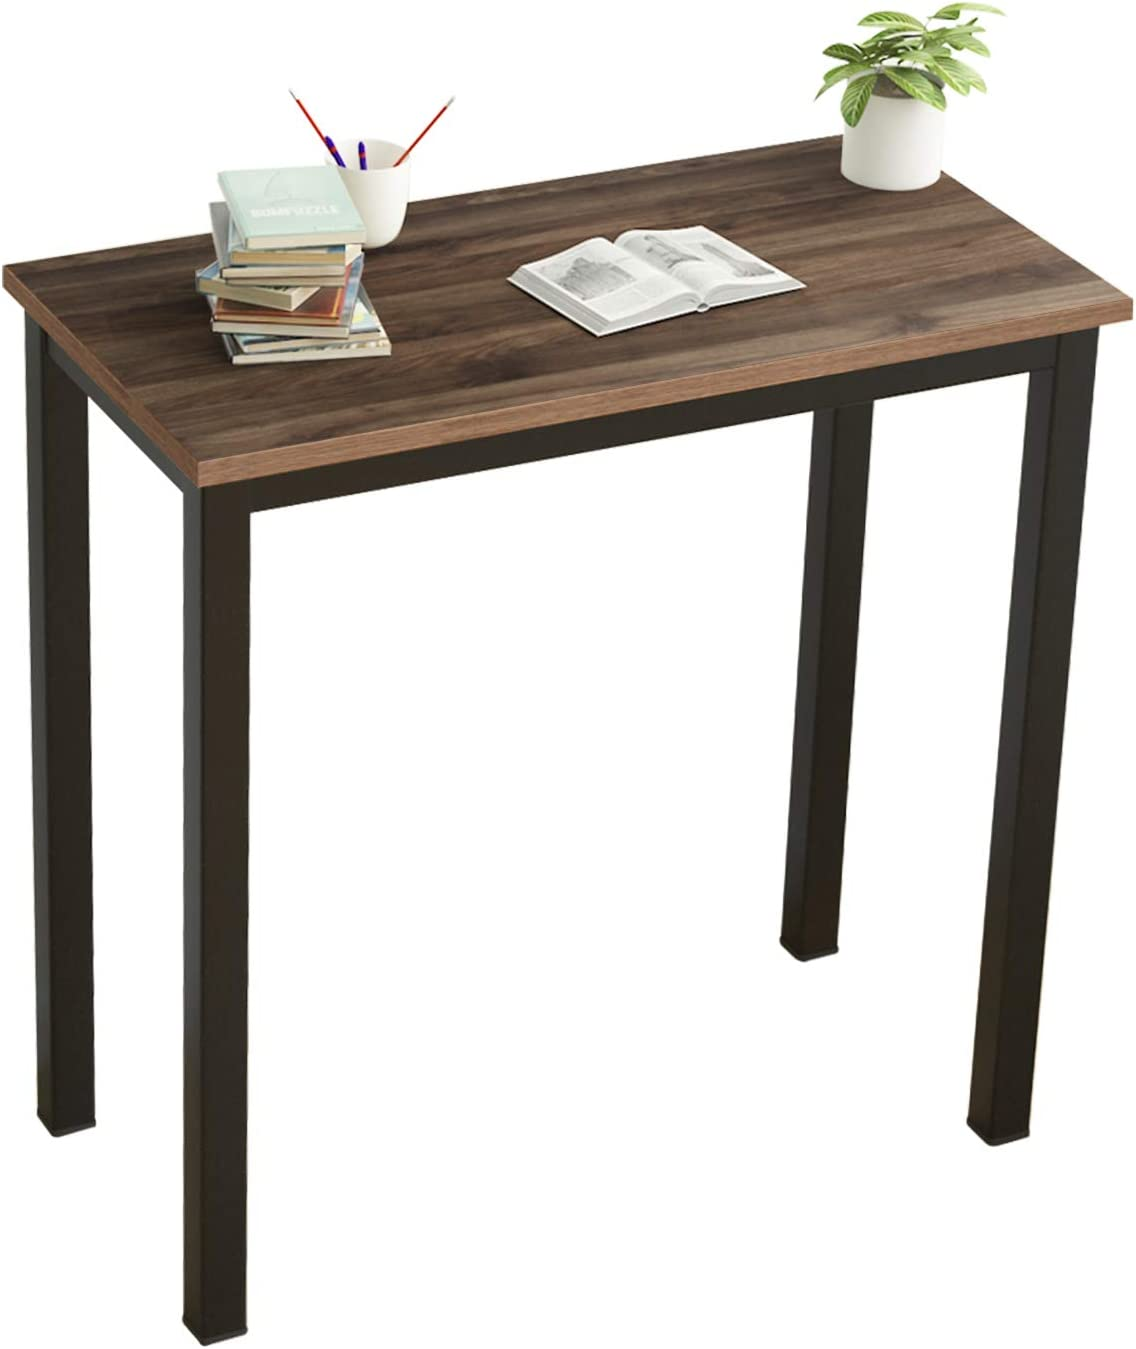 DlandHome 31.5 Inches Small Computer Desk for Home Office Folding Table Writing Table for Small Spaces Study Table Laptop Desk Black (Walnut)